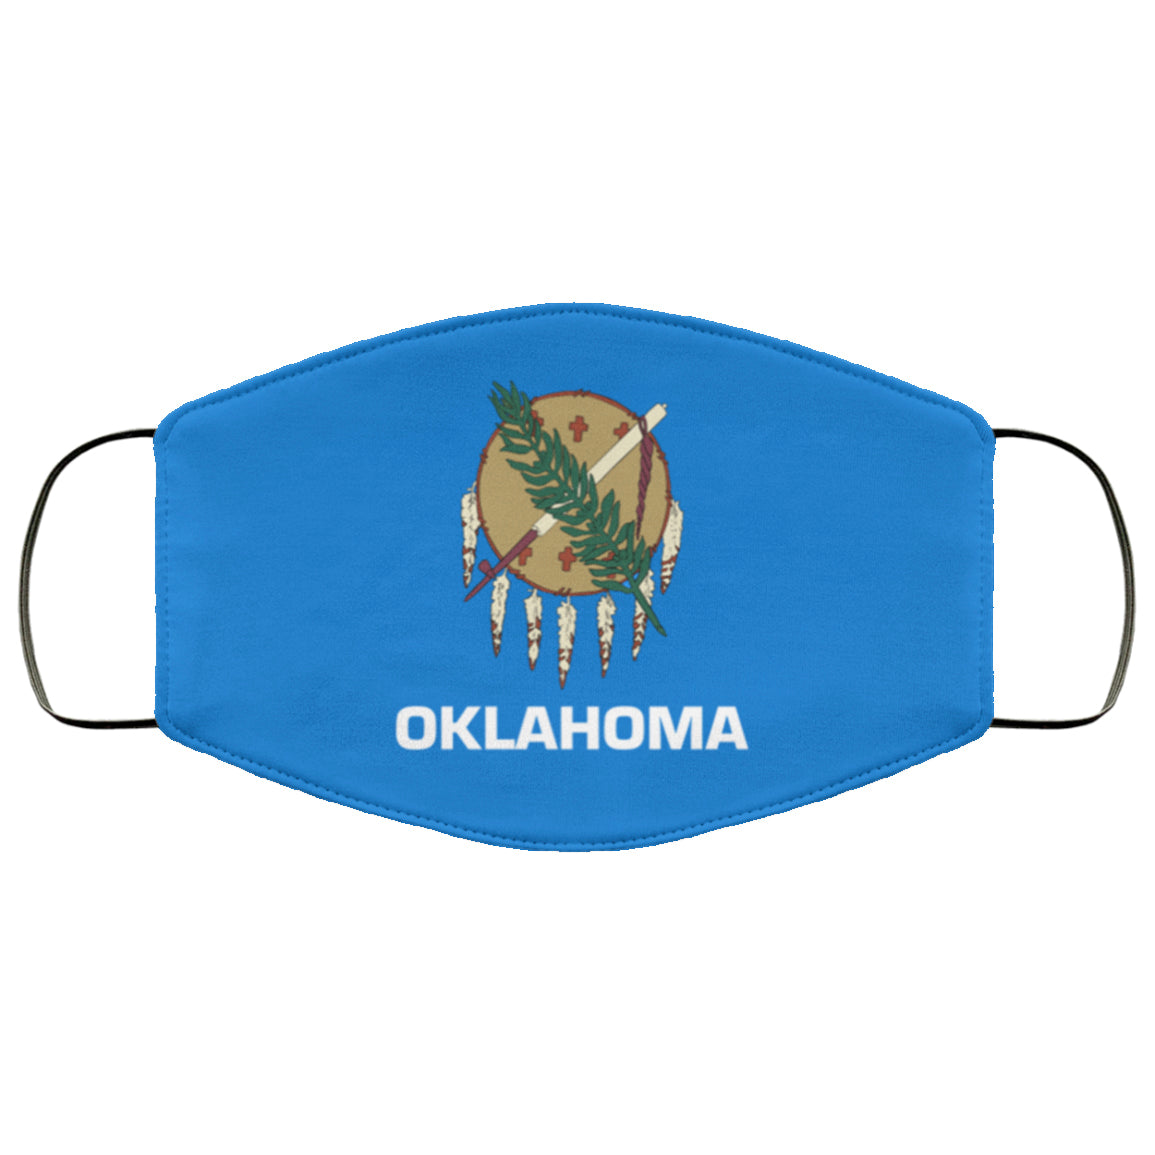 Oklahoma State Flag USA Face Mask